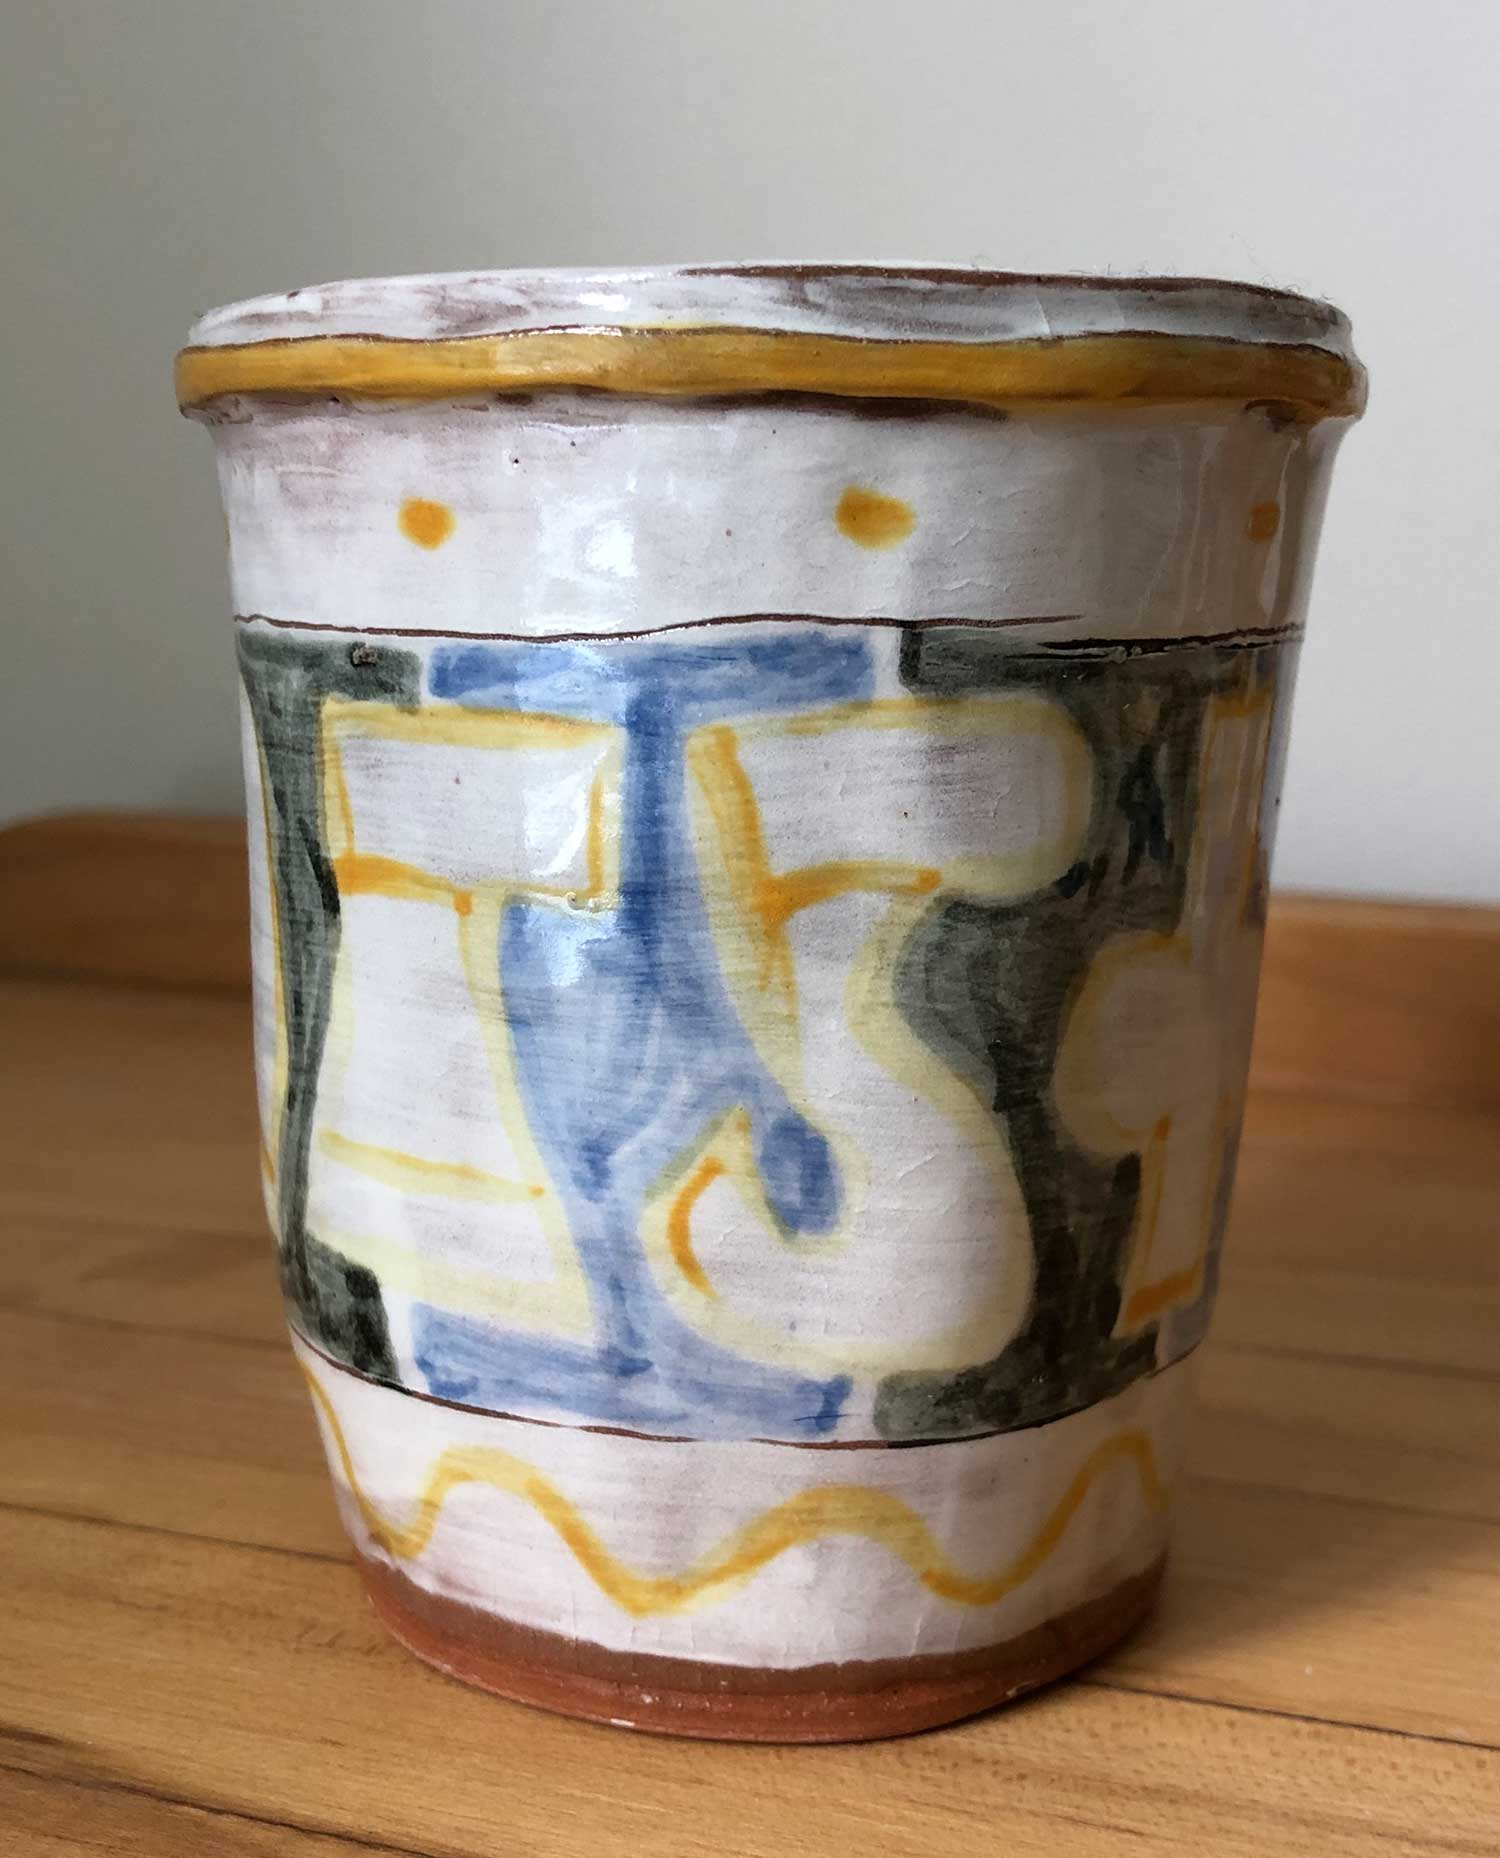 holly_hughes_other_ceramics_cup_site.jpg